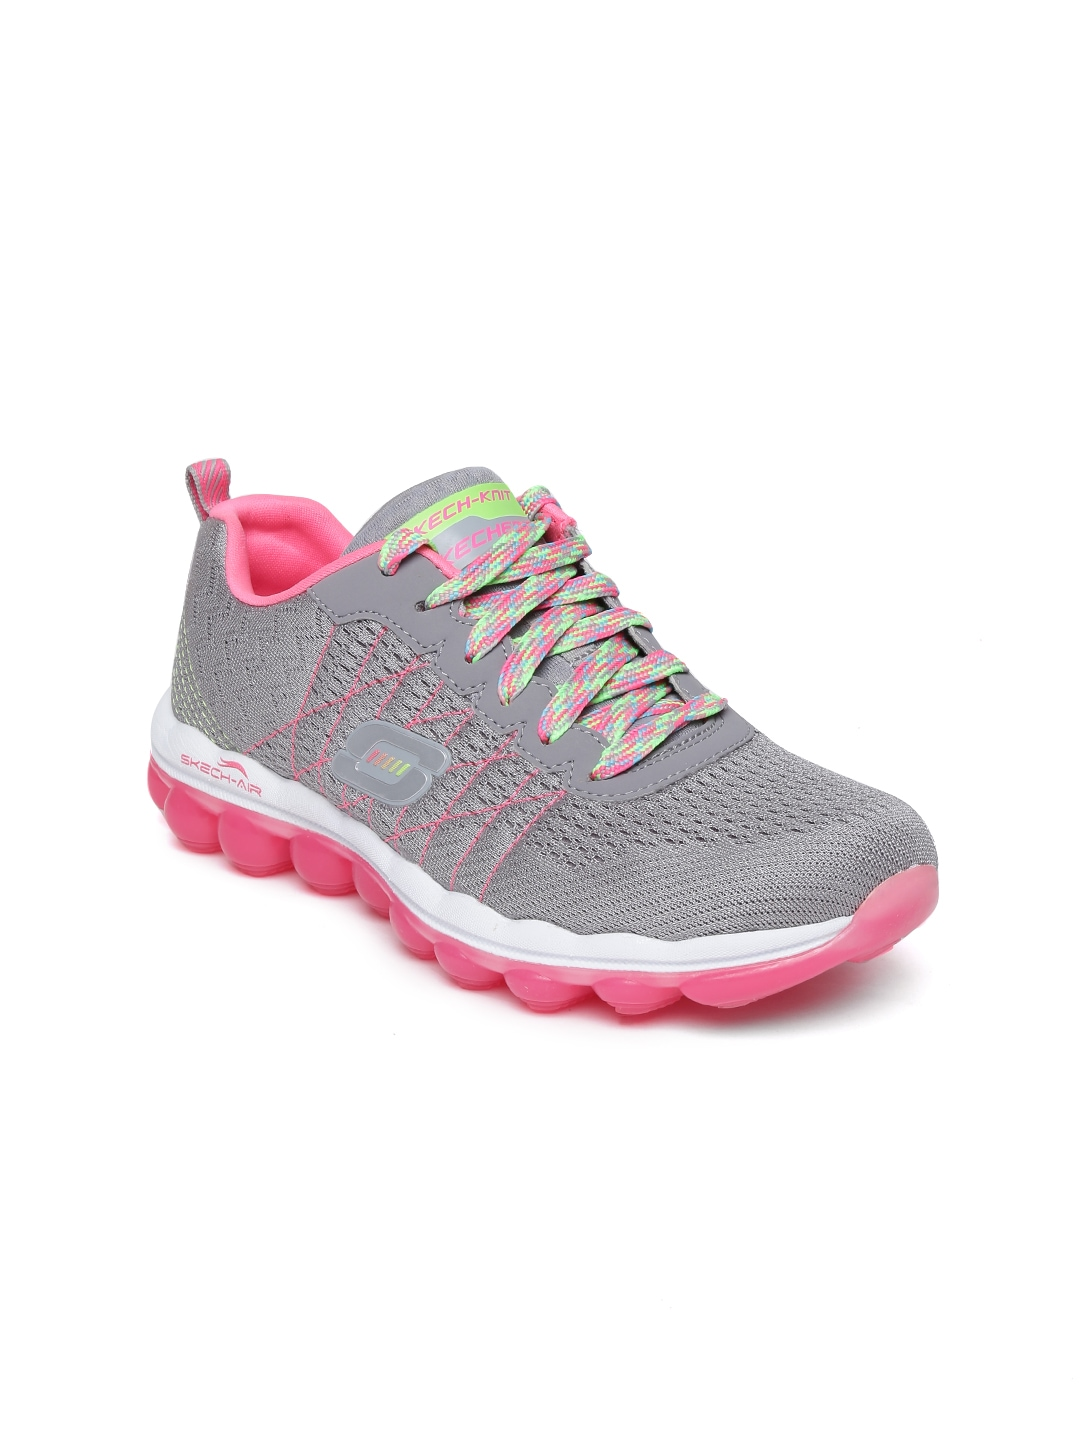 Ucb Shoes For Women